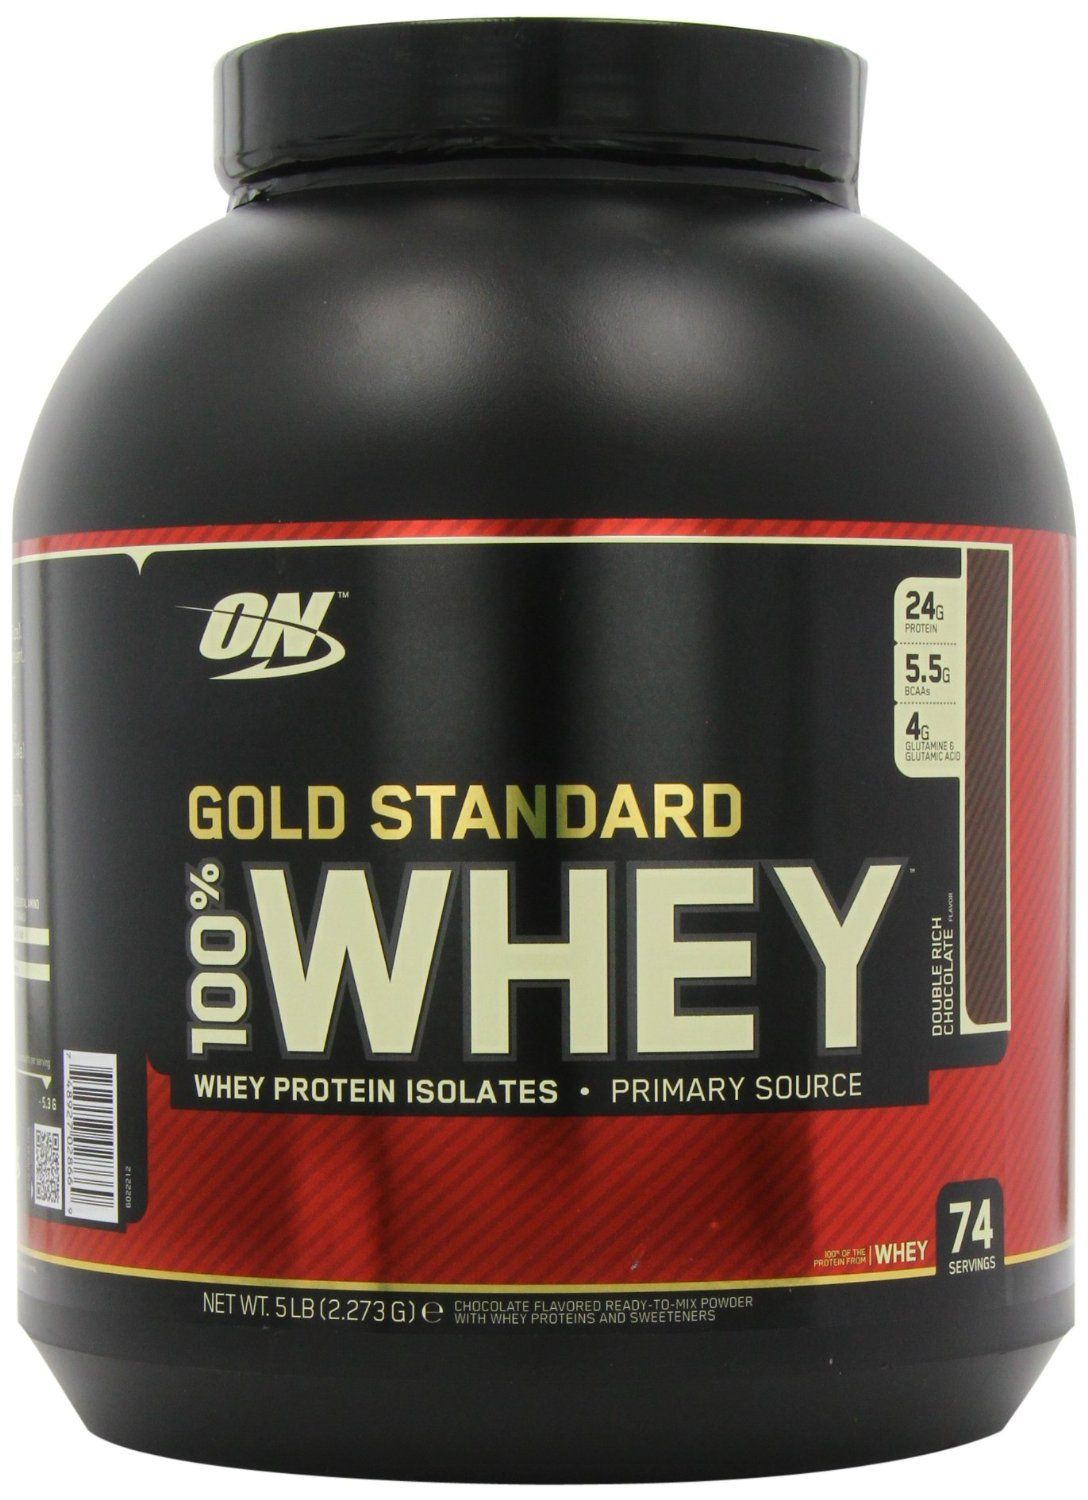 Optimum Nutrition 100 Whey Gold Standard Tastes Good Is A High Quality Blend Of Concentr Gold Standard Whey Optimum Nutrition Gold Standard Optimum Nutrition